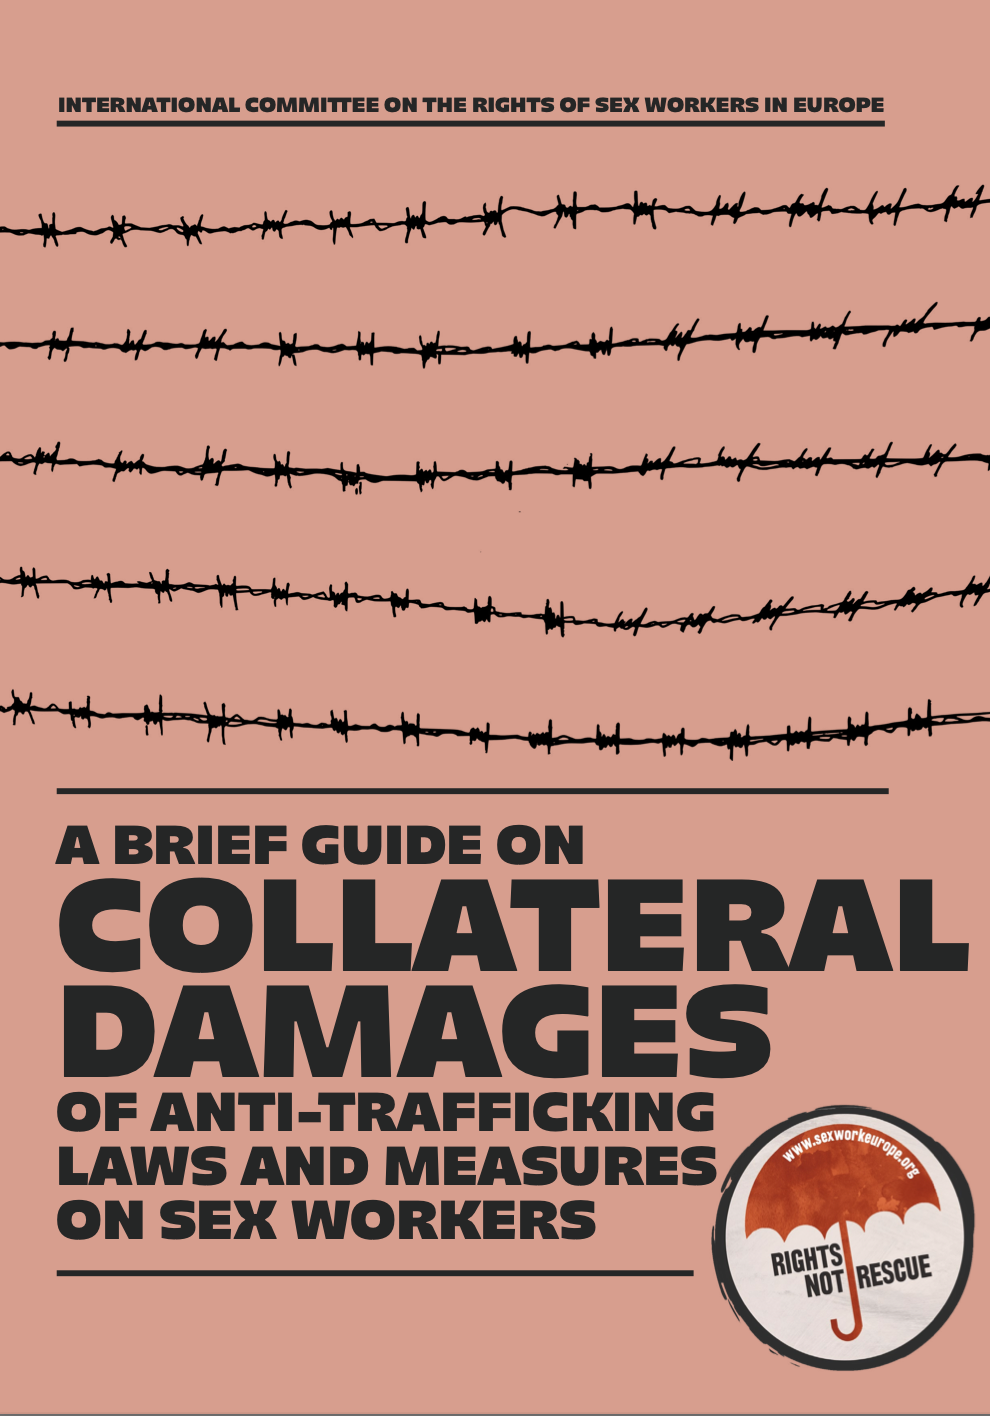 Collateral Damages Of Anti-trafficking Laws And Measures On Sex Workers